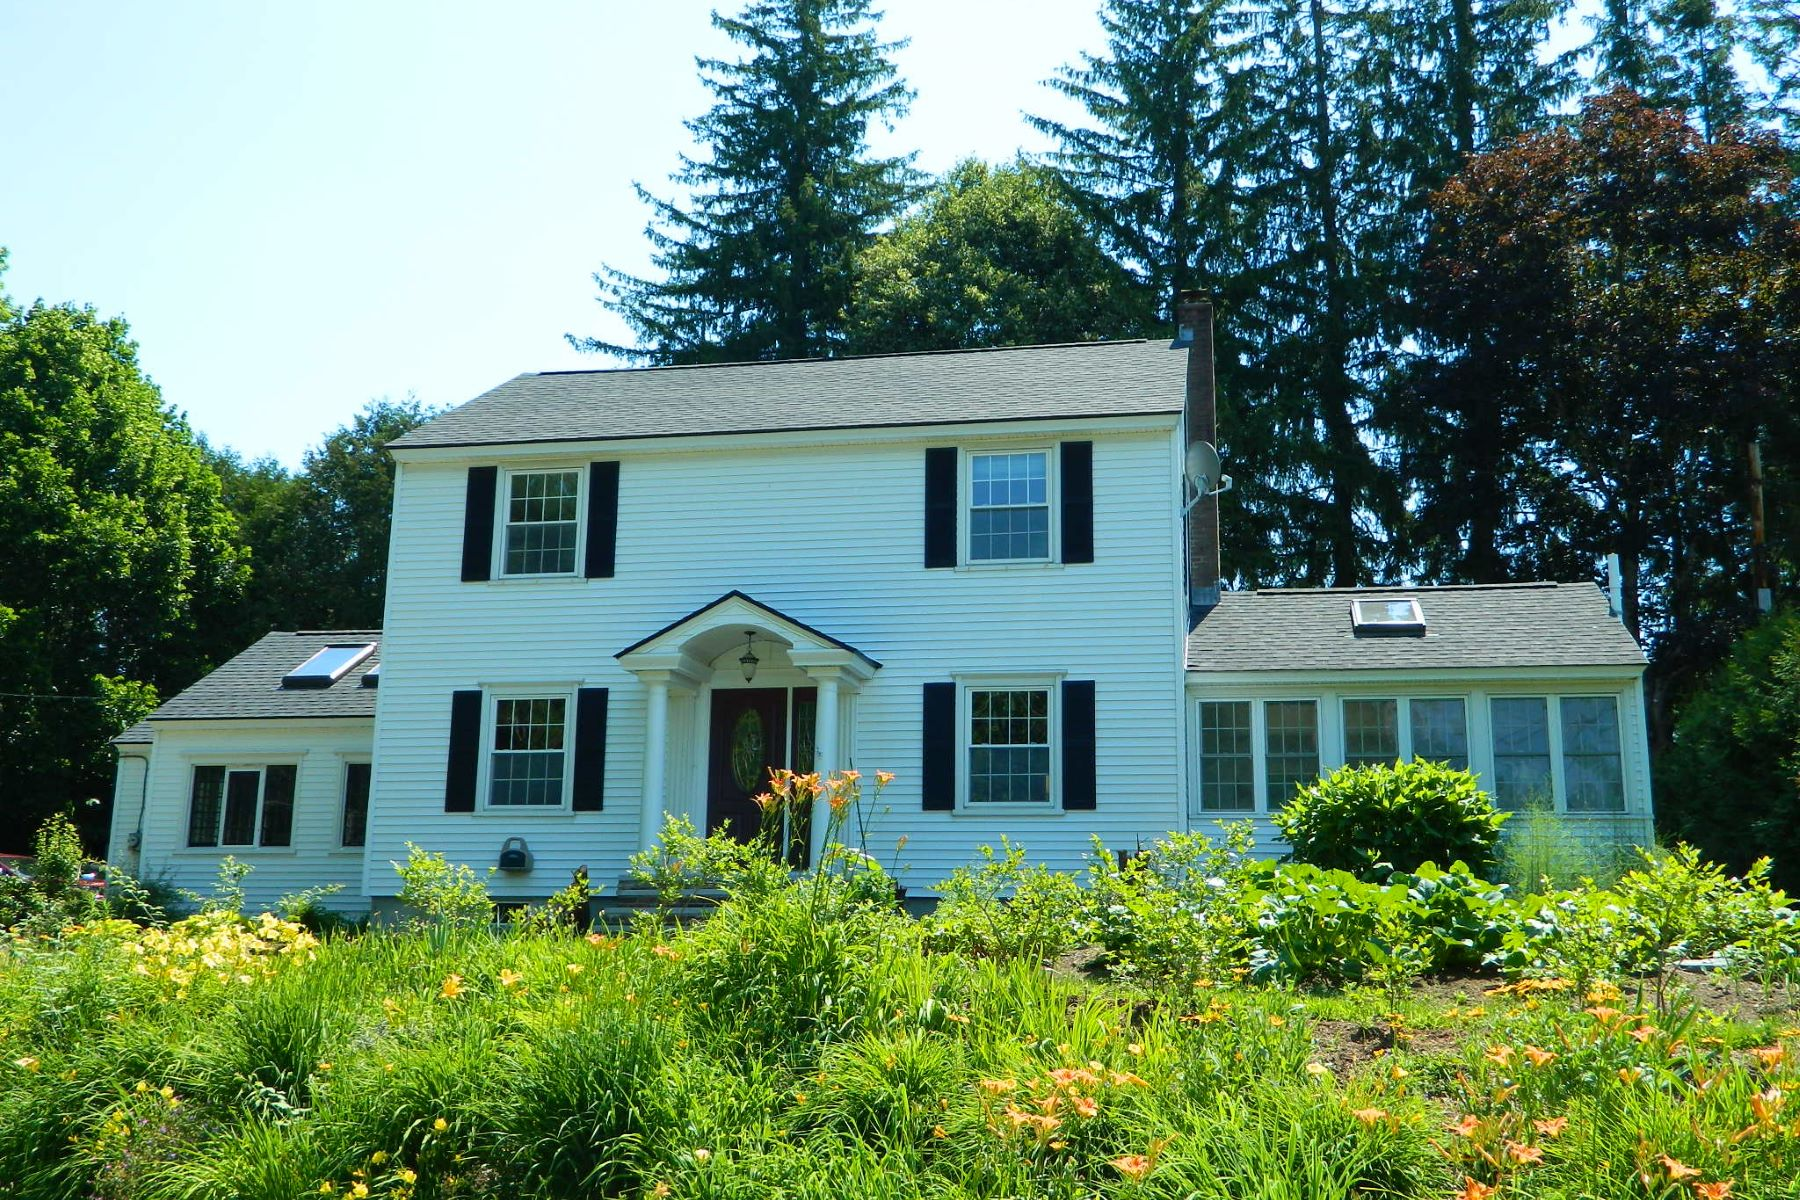 Single Family Home for Sale at 244 Underclyffe Rd., St. Johnsbury 244 Underclyffe Rd St. Johnsbury, Vermont 05819 United States